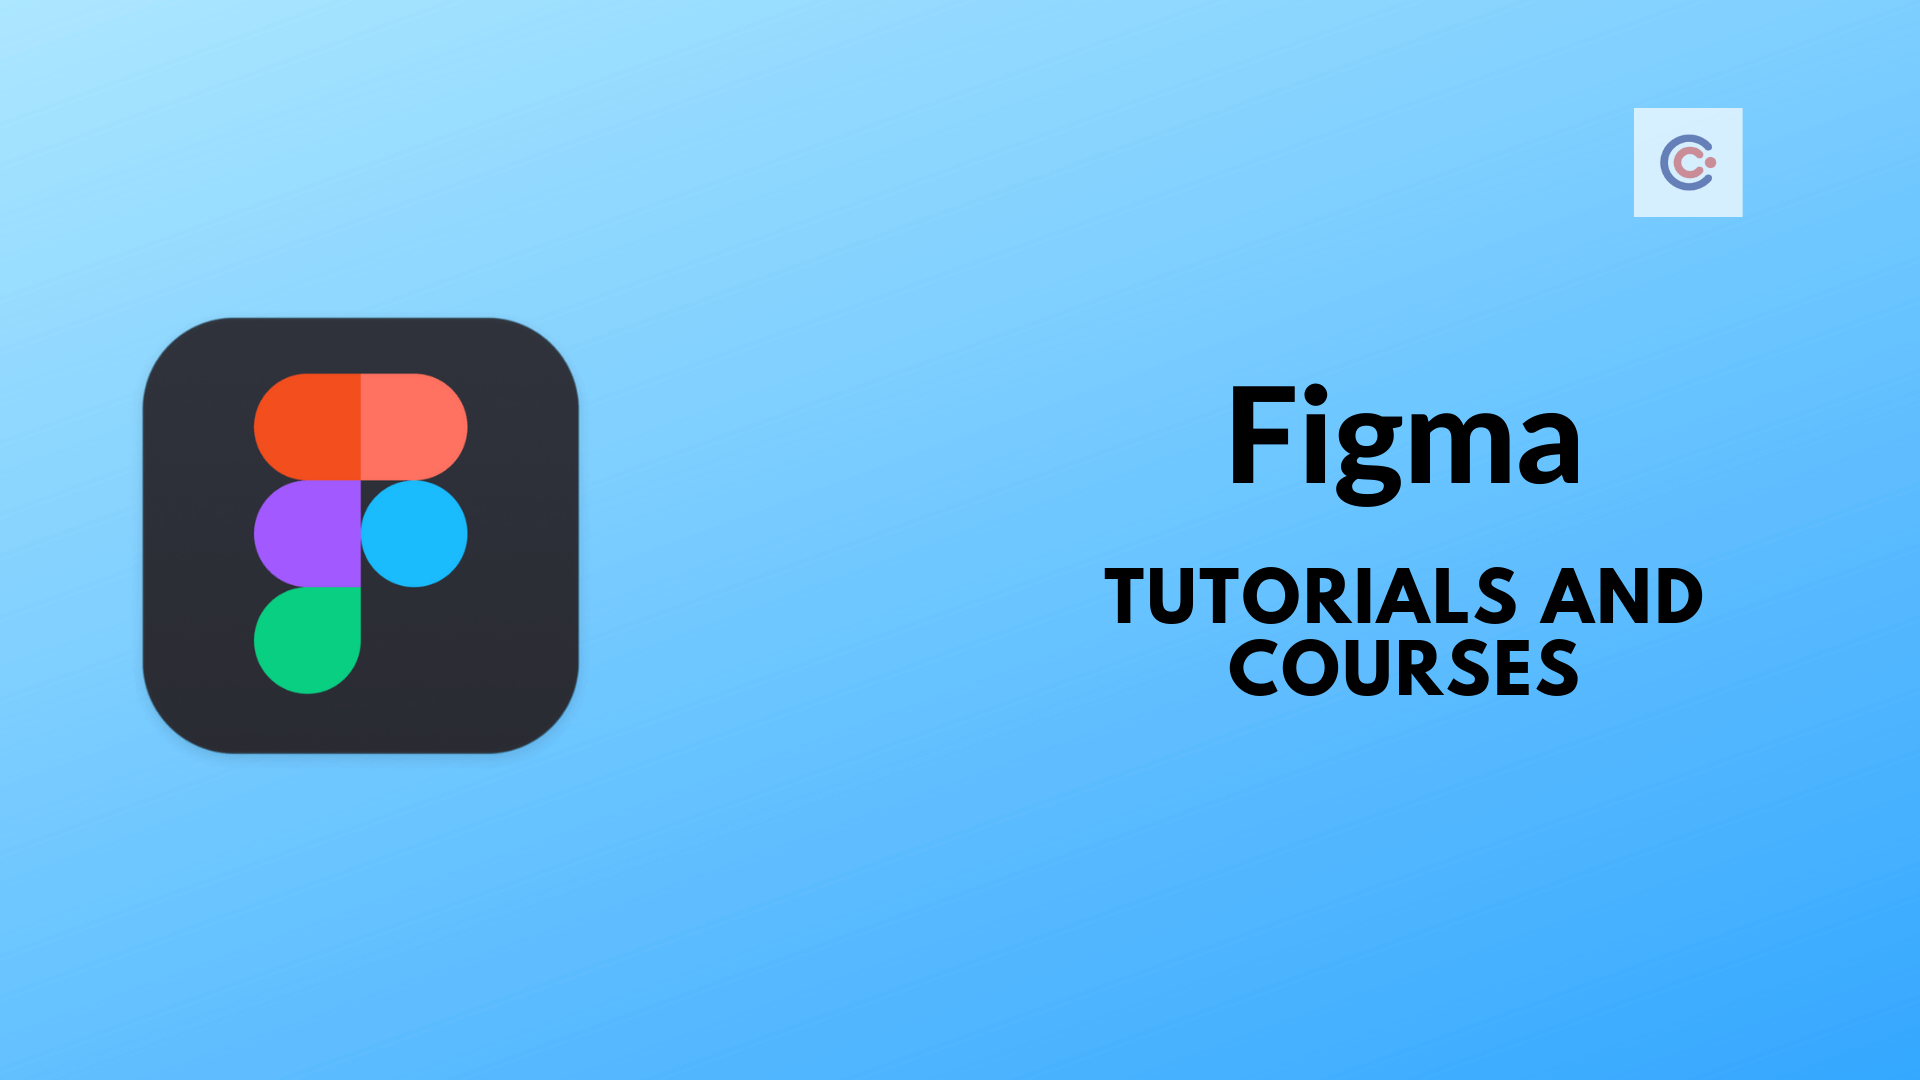 9 Best Figma Tutorials and Courses - Learn Figma Online